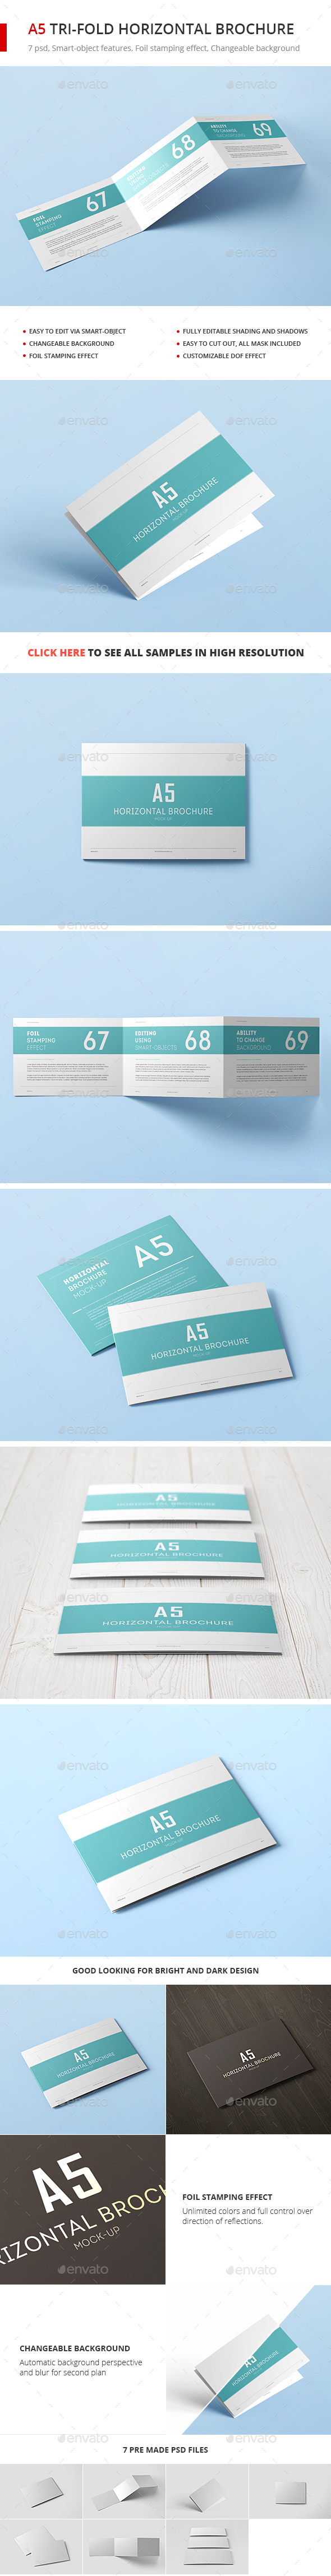 A5 Tri-Fold Horizontal Brochure Mock-up - Brochures Print